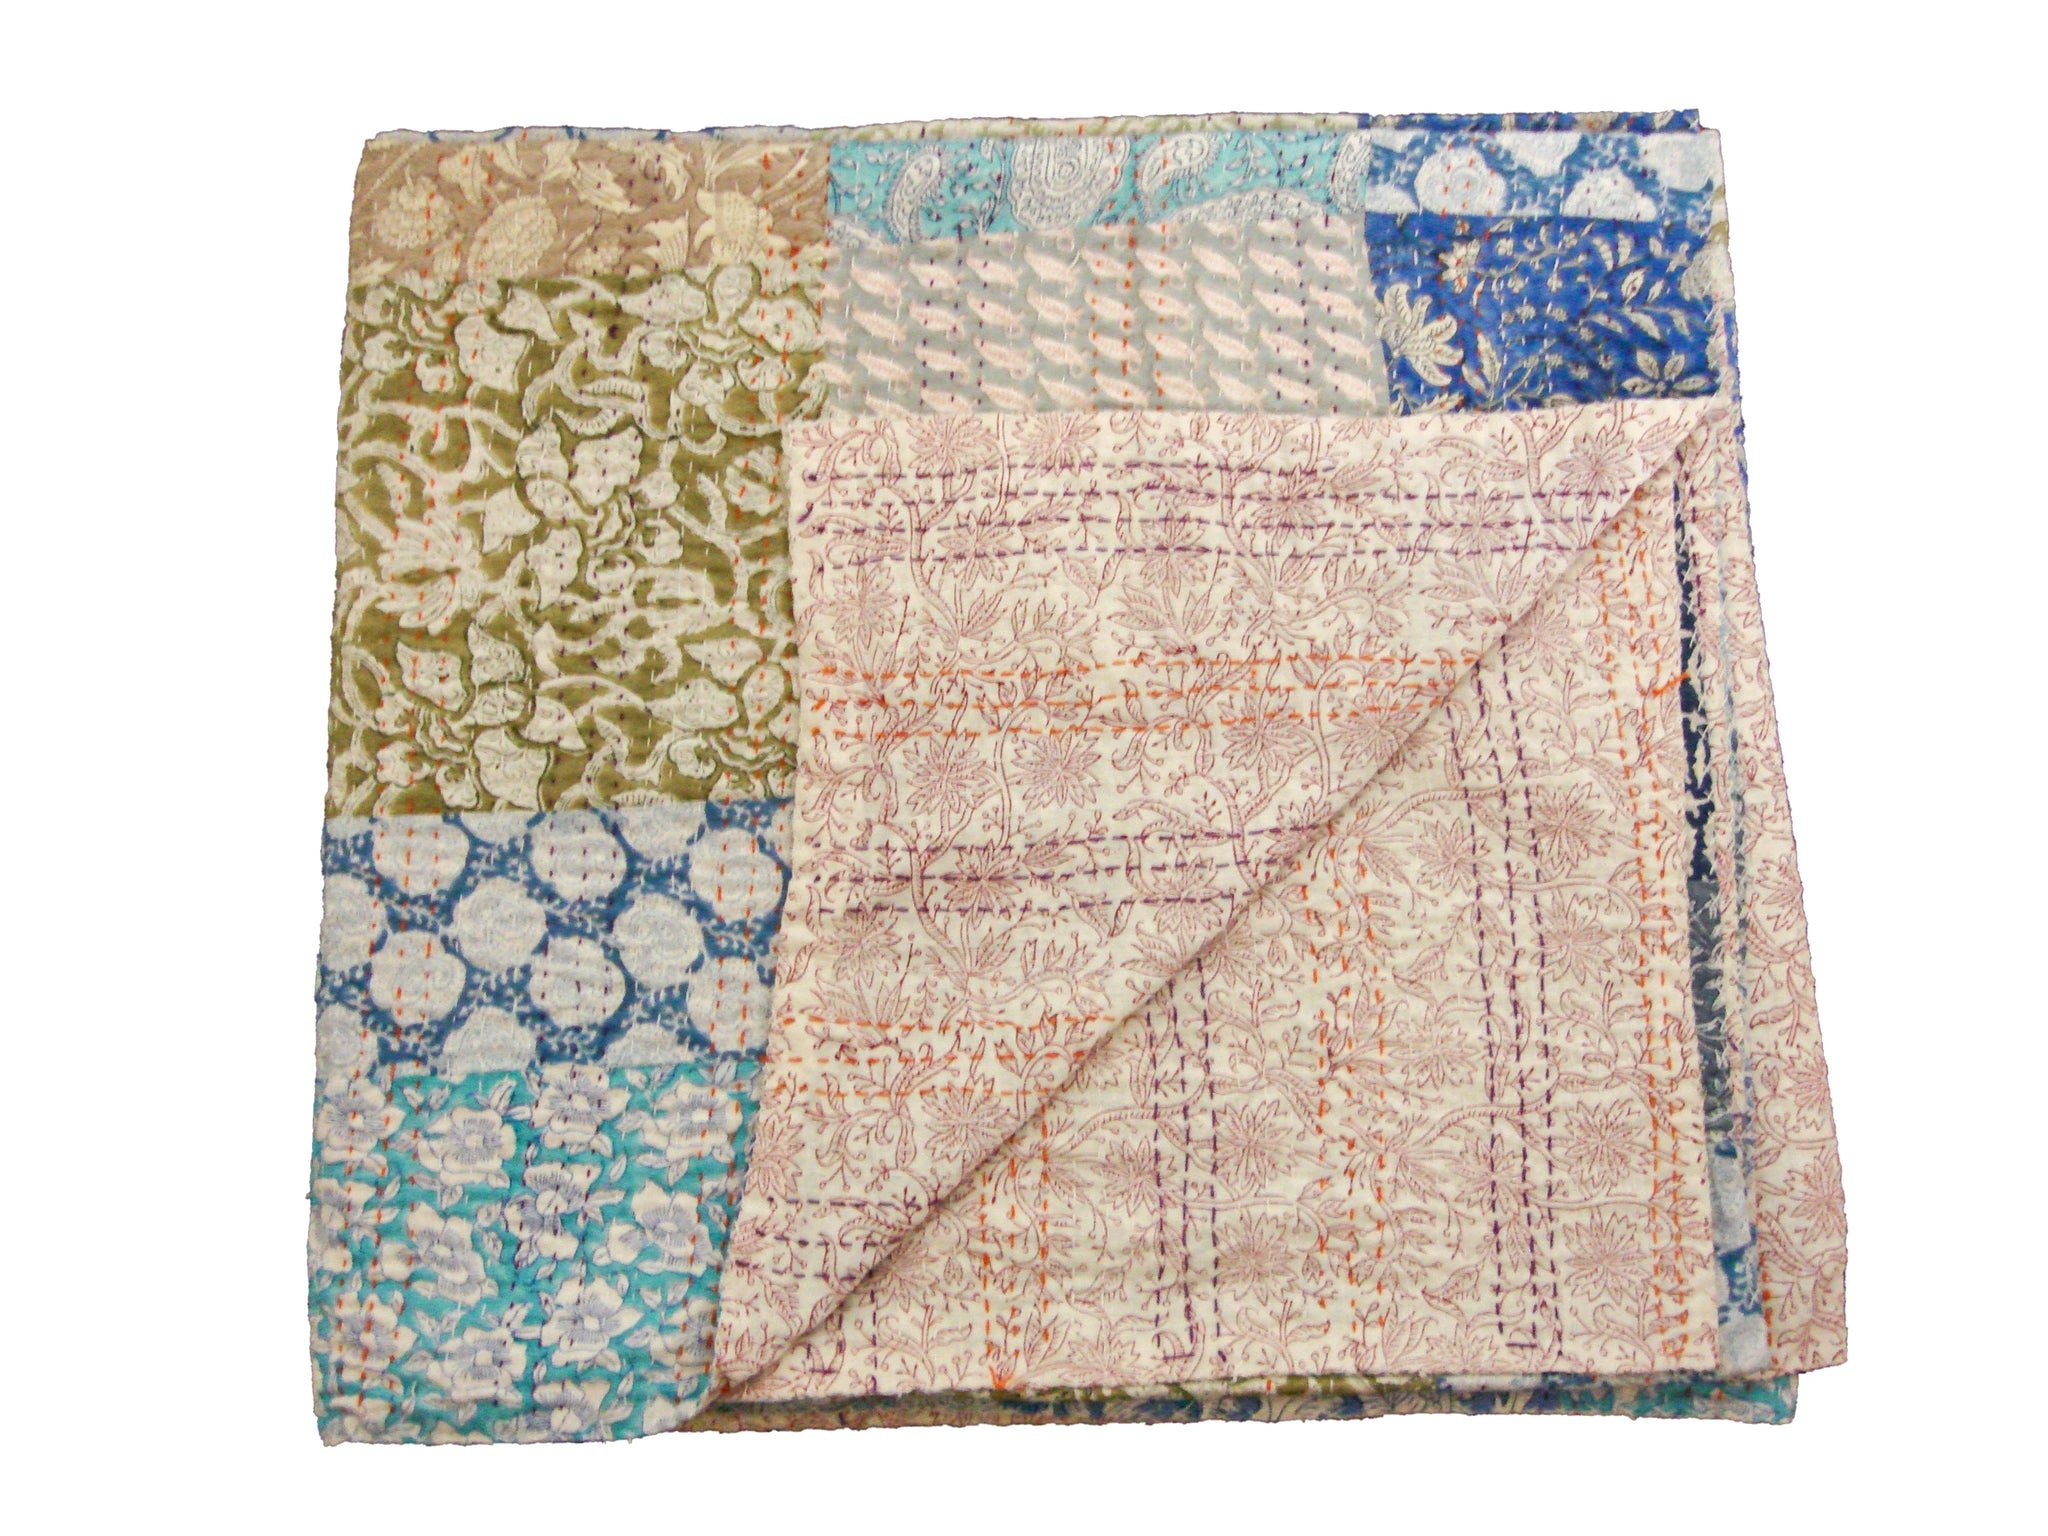 Handmade Patchwork Throw - Multicolored Patchwork